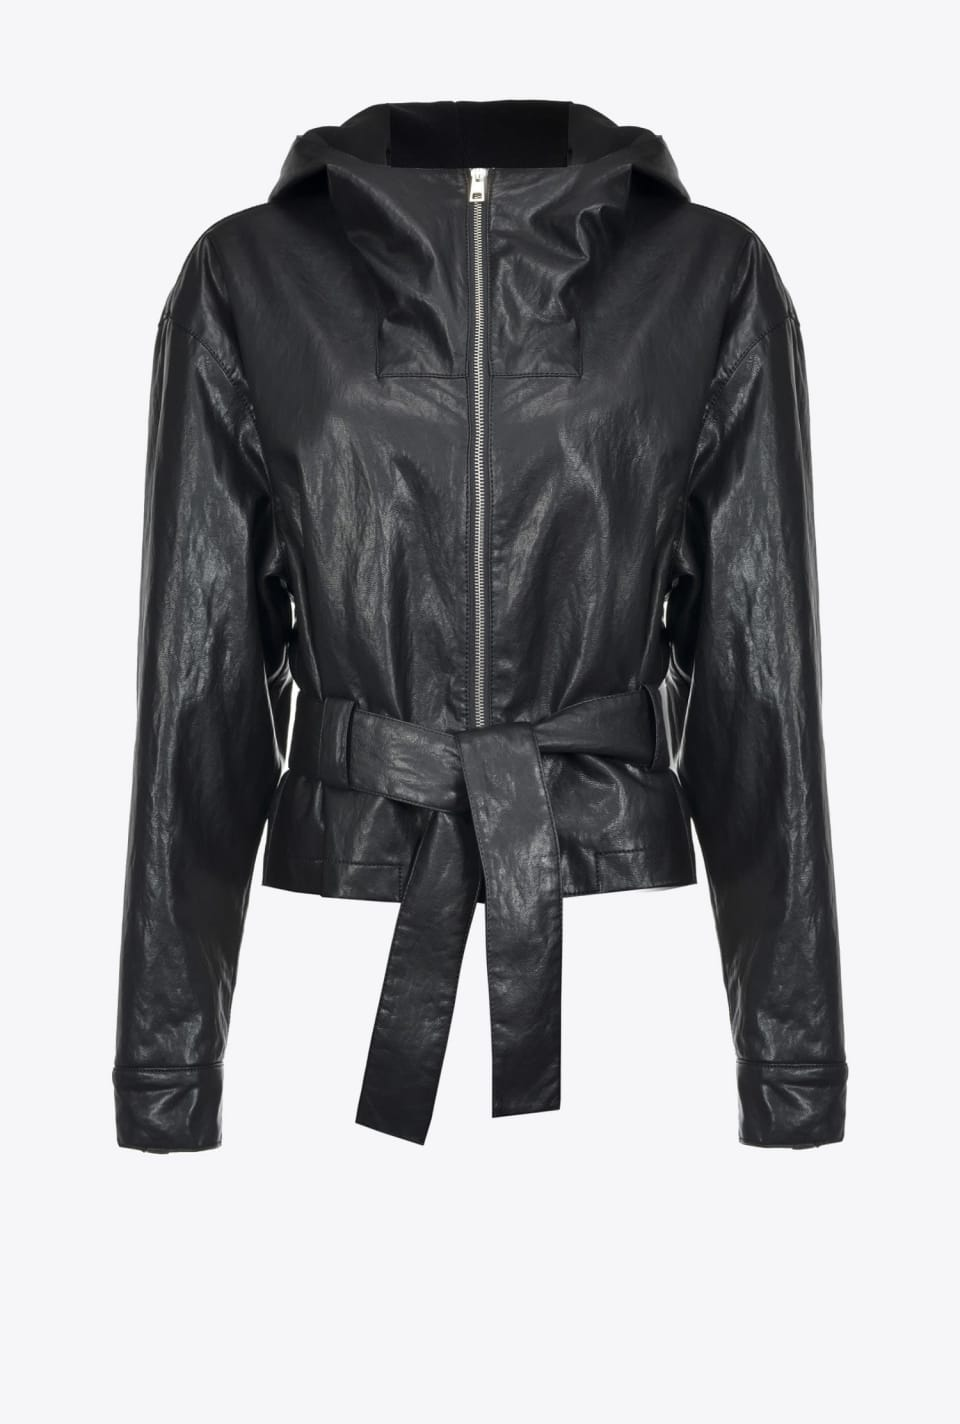 Jacket in leather-look fabric - Pinko